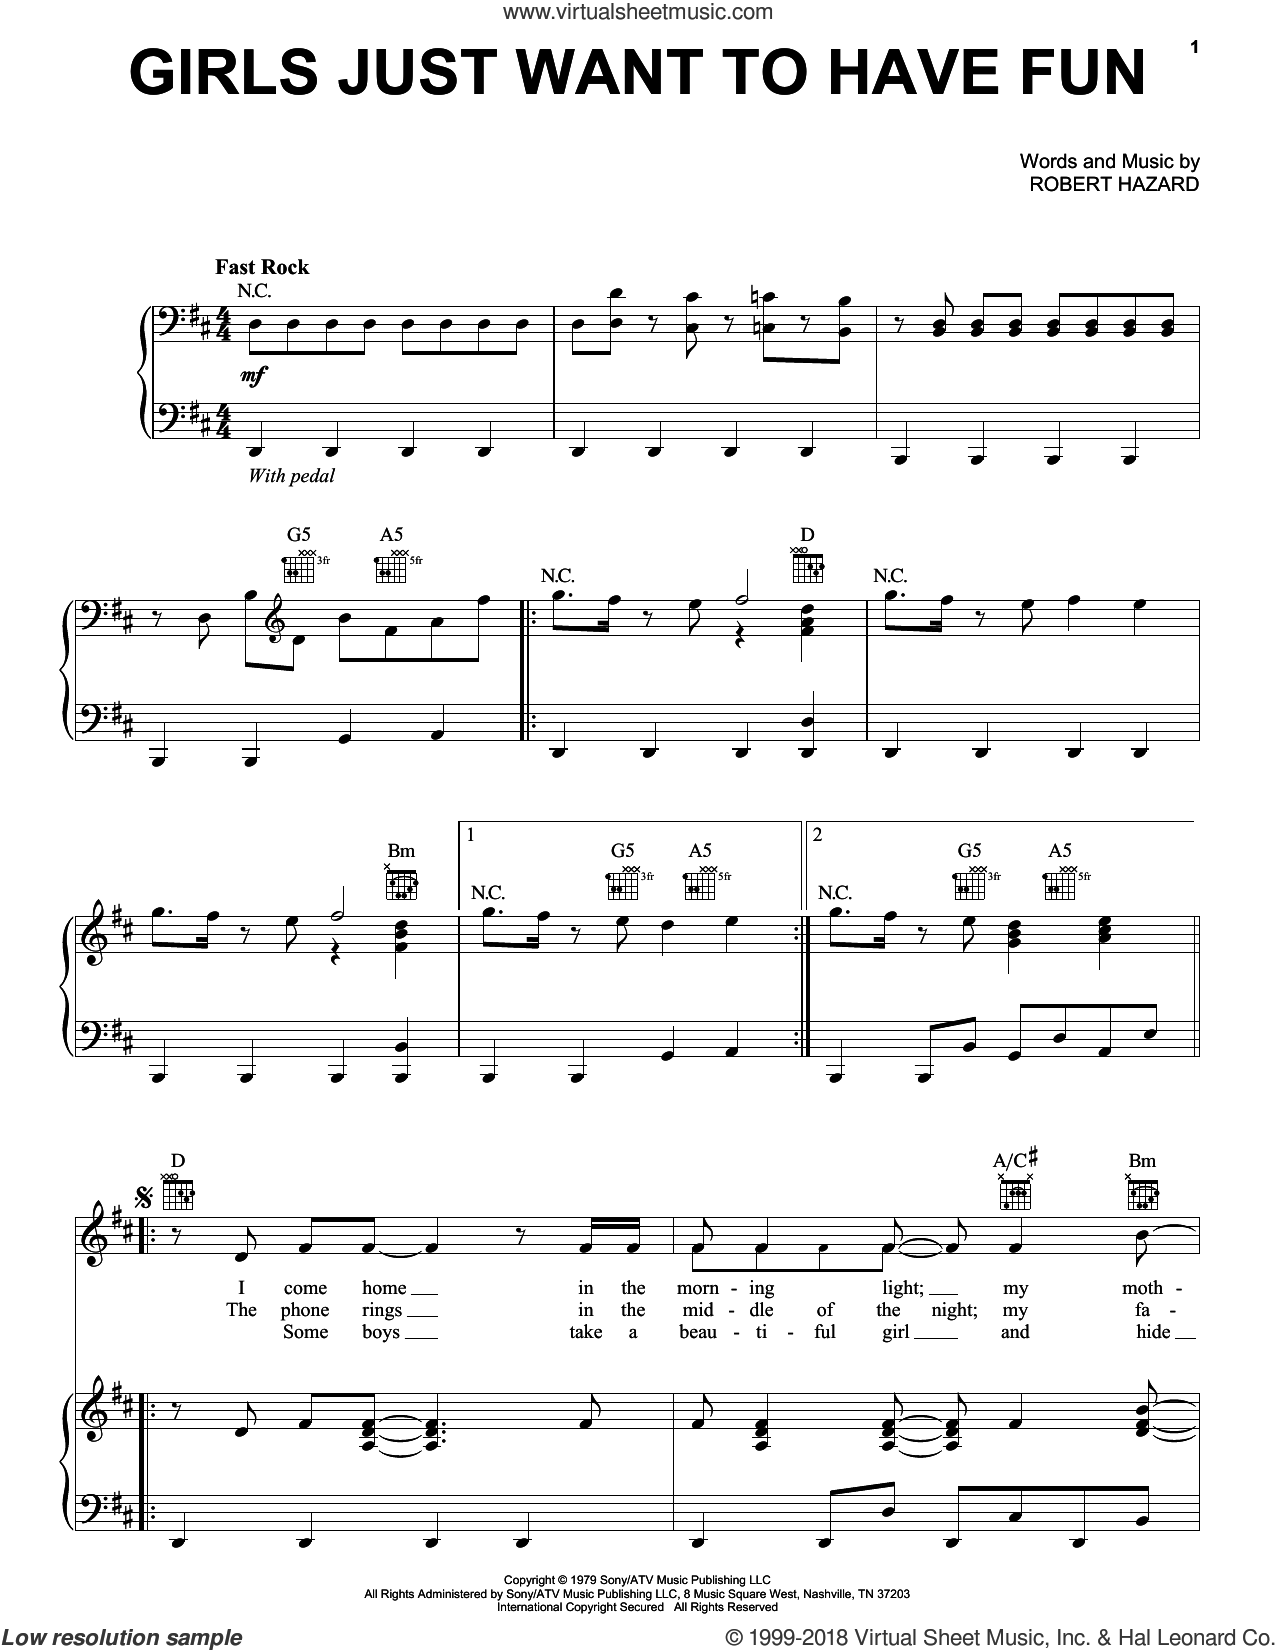 Girls Just Want To Have Fun sheet music for voice, piano or guitar by Miley Cyrus, Cyndi Lauper and Robert Hazard, intermediate skill level